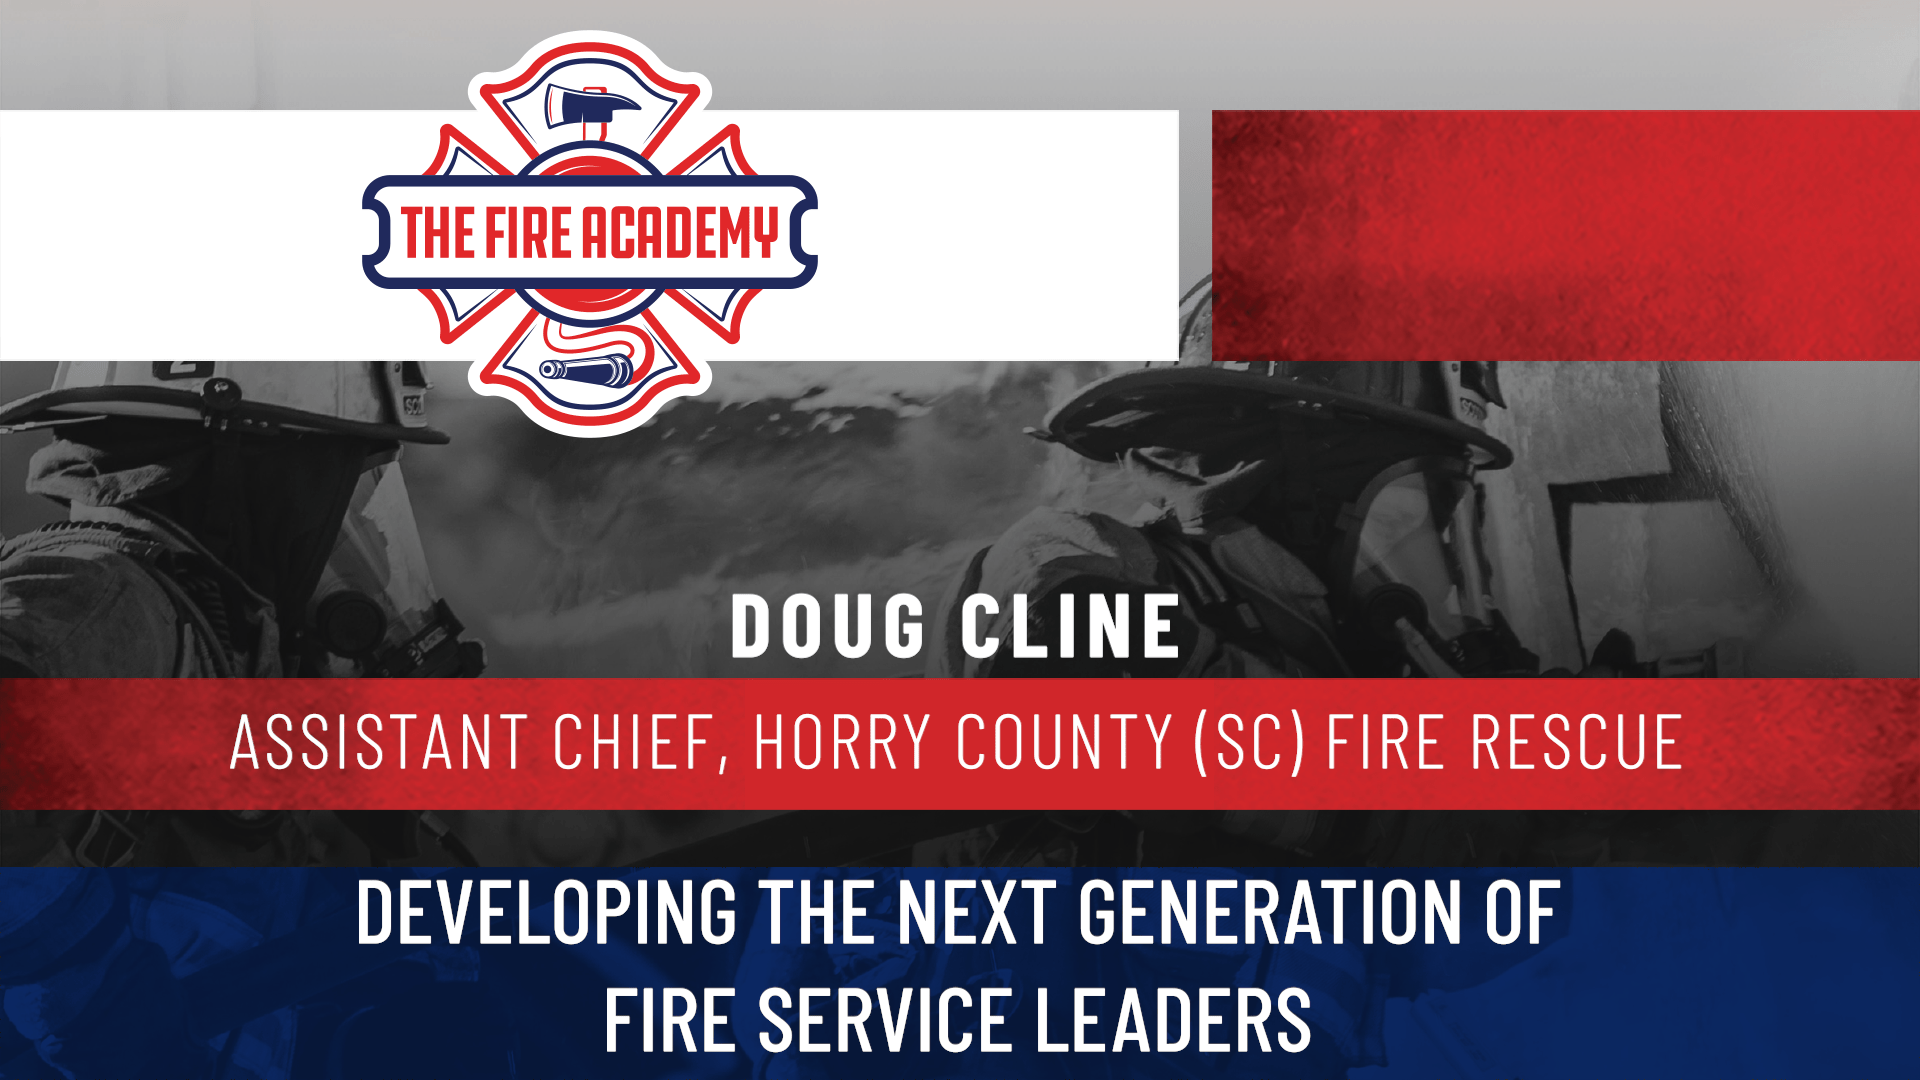 Developing the Next Generation of Fire Service Leaders